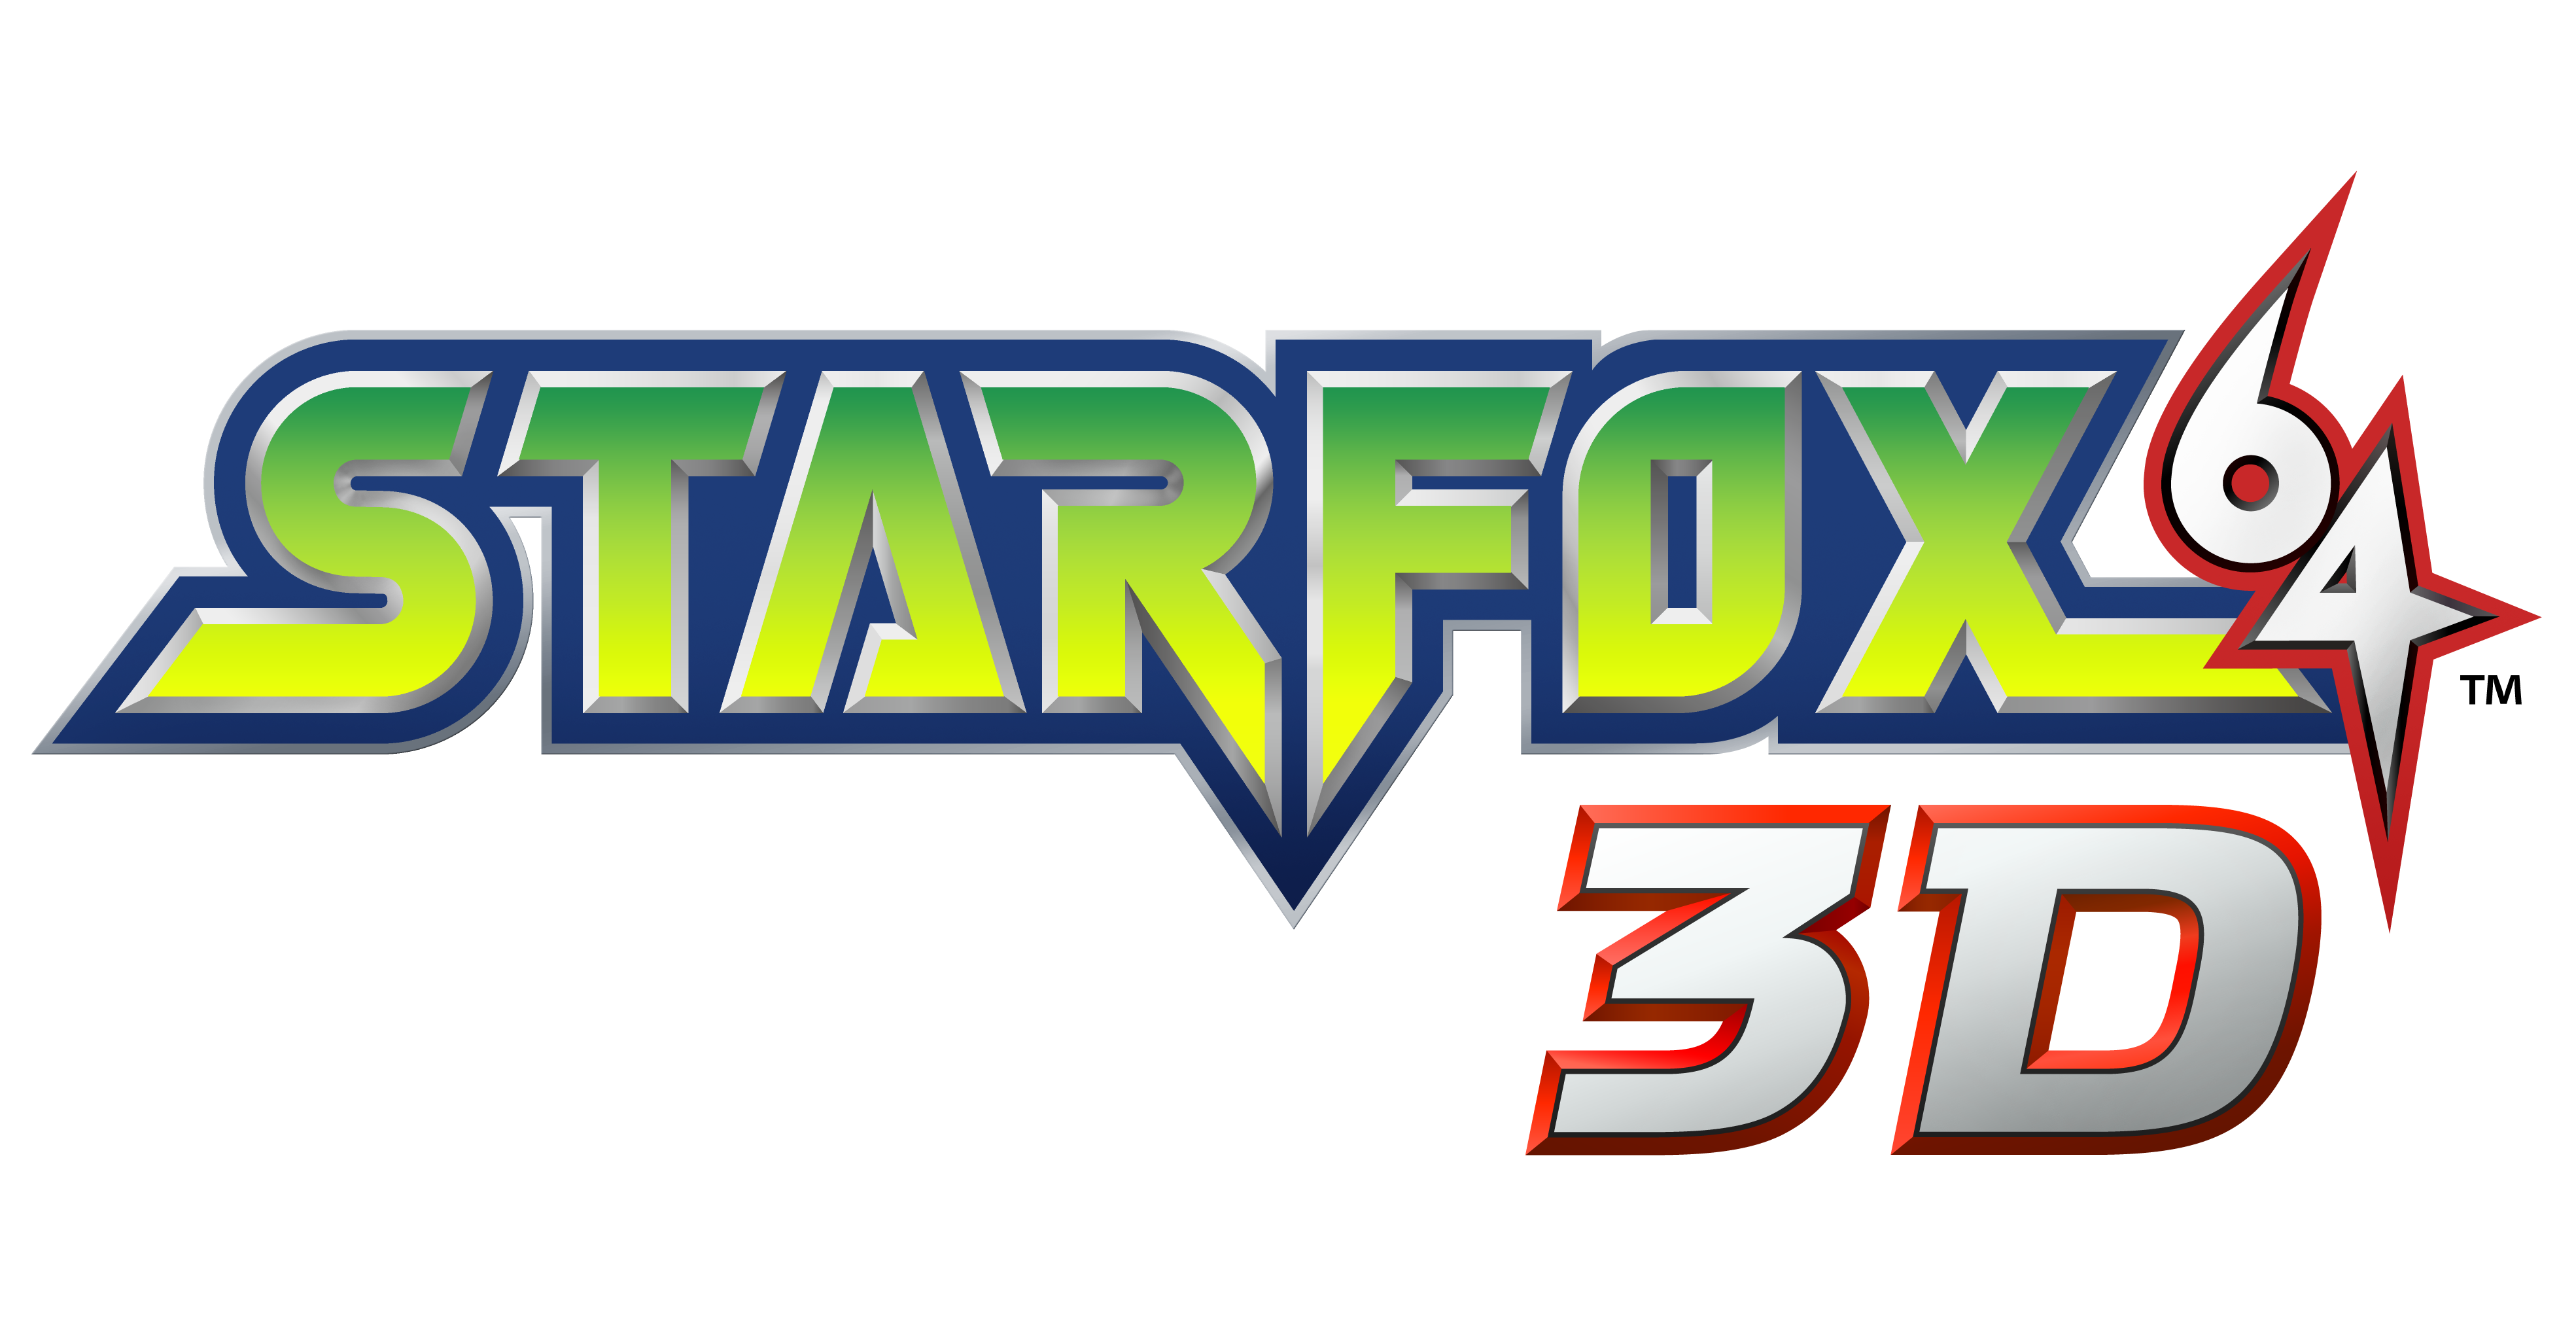 Archivo:Star Fox 64 3D logo.png